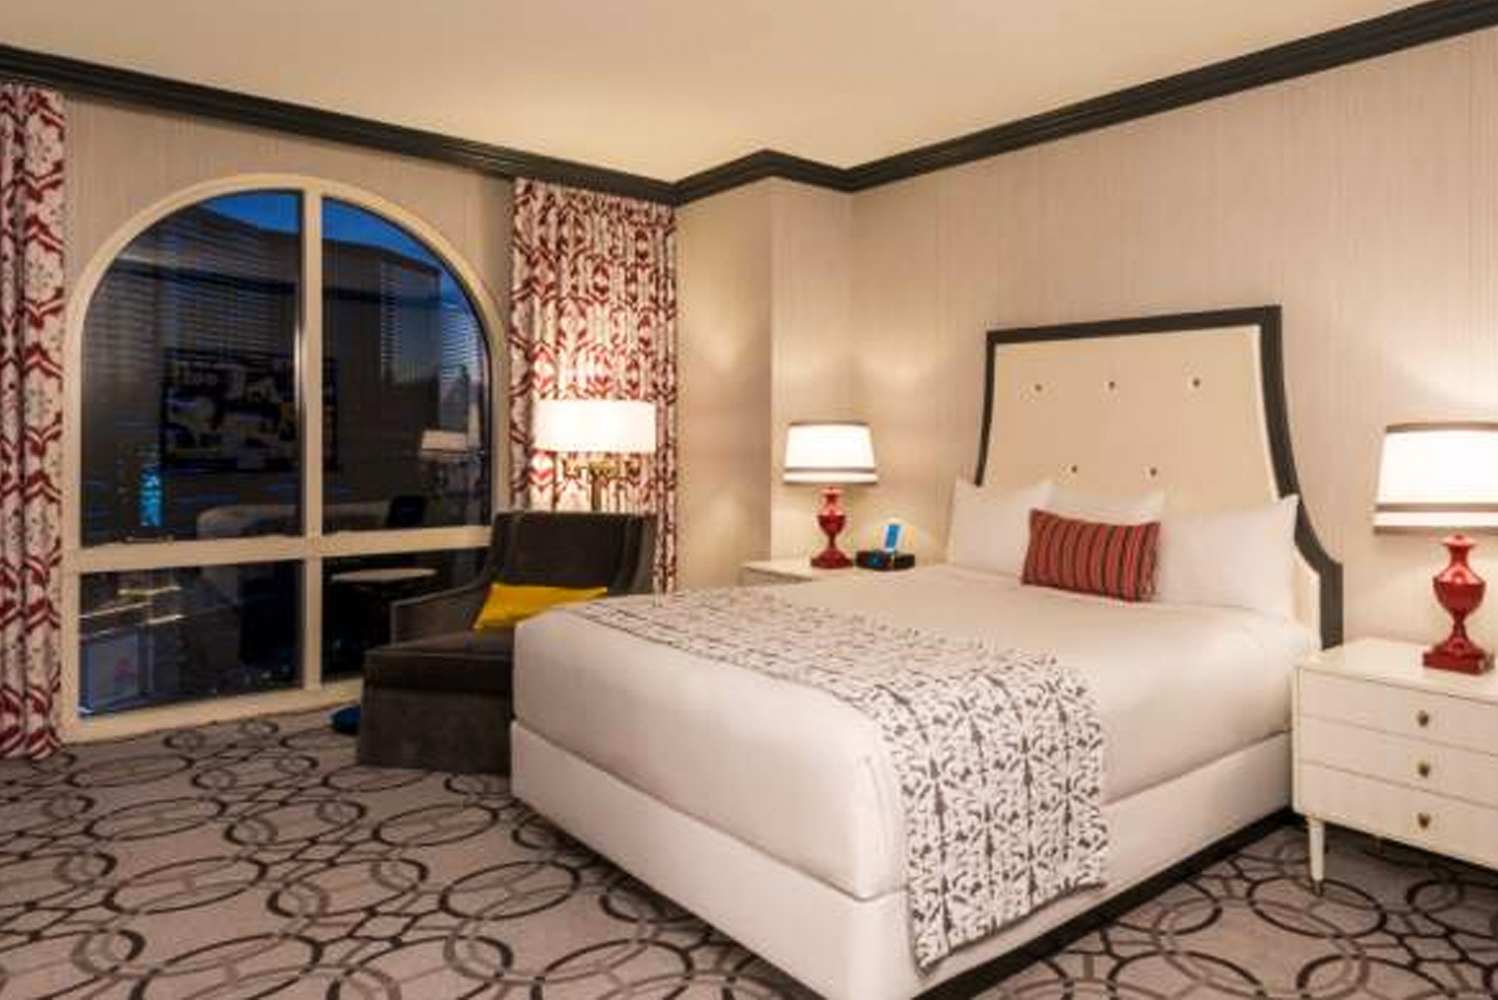 Paris Las Vegas is investing more than $92 million this year for a renovation project that includes the revamp of an additional 1,600 guestrooms and the all-new Voie Spa & Salon.